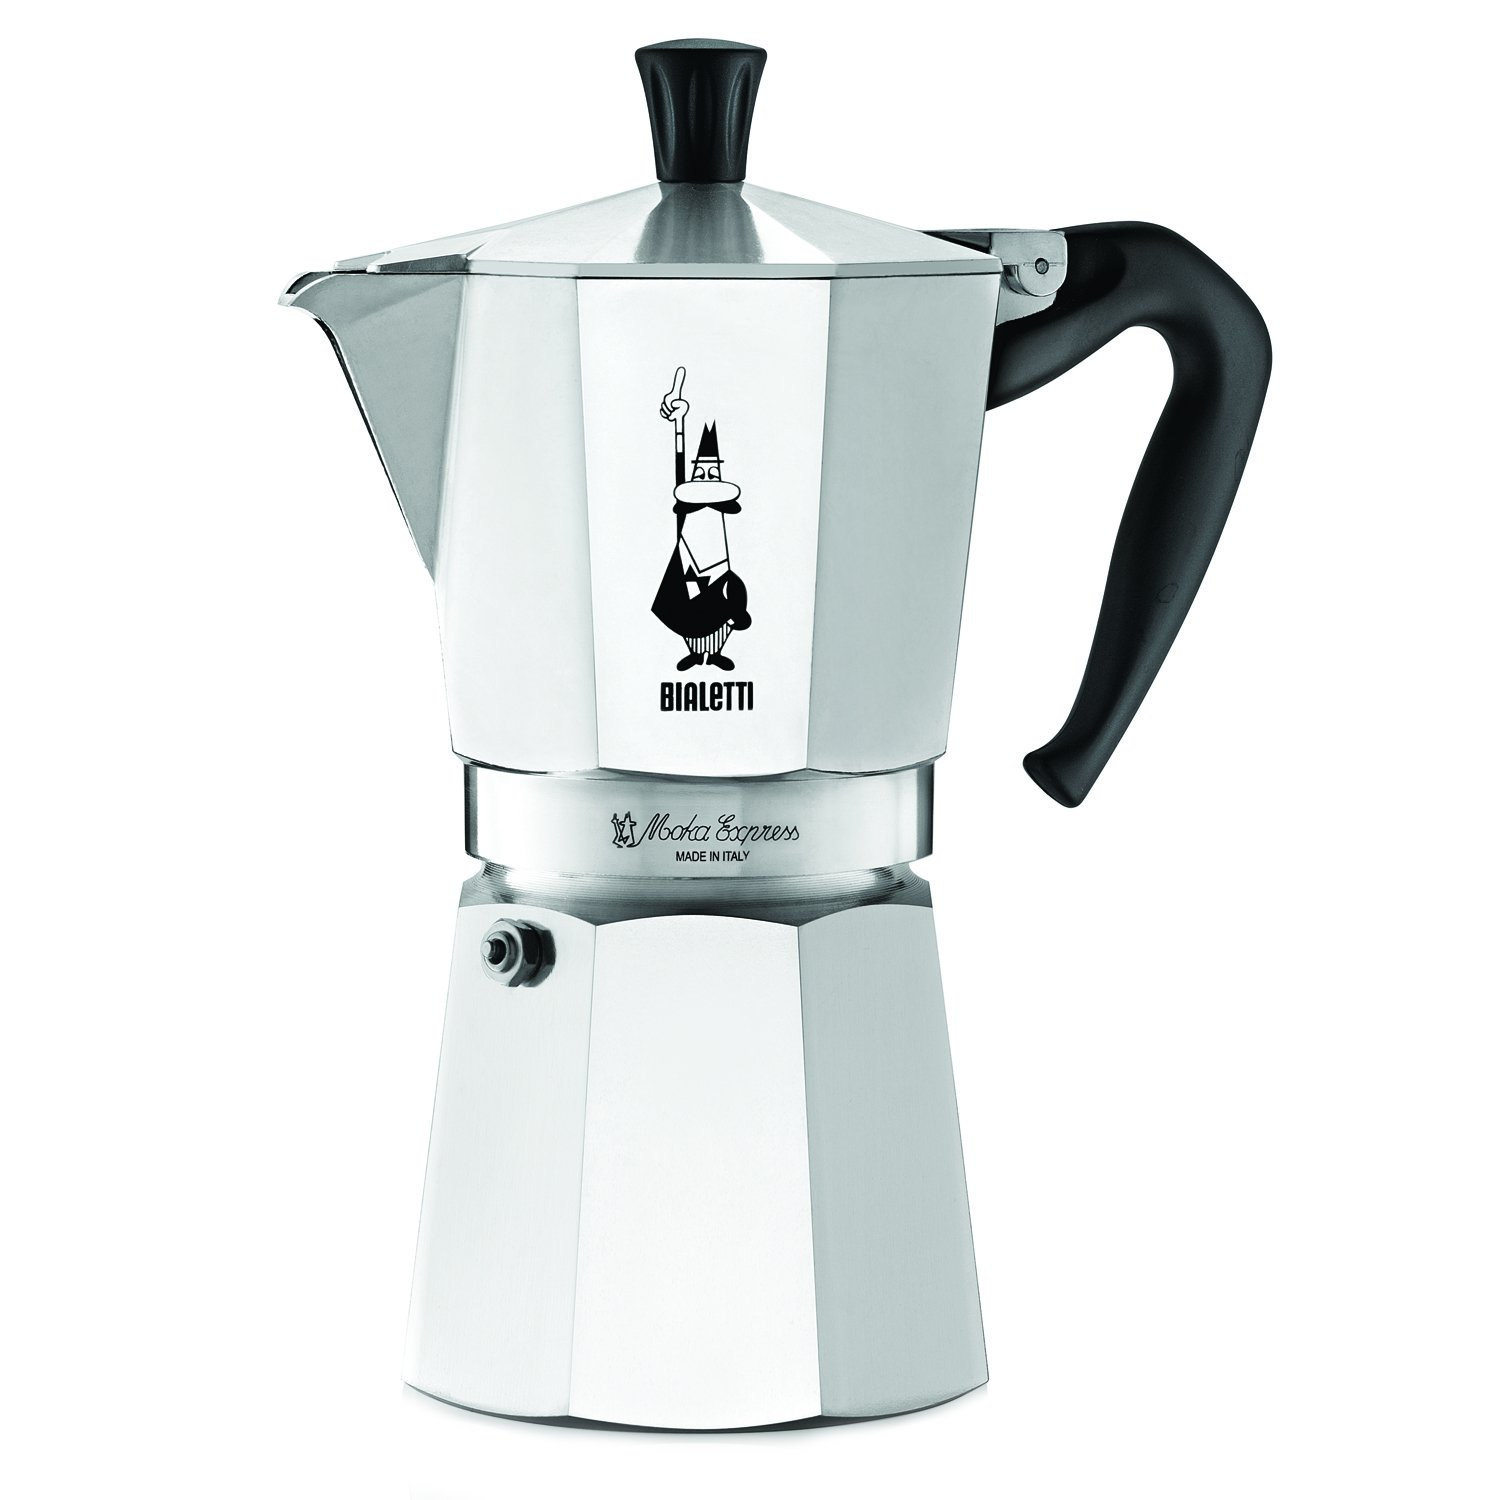 Bialetti 6801 moka stovertop coffee maker 9-Cup Silver